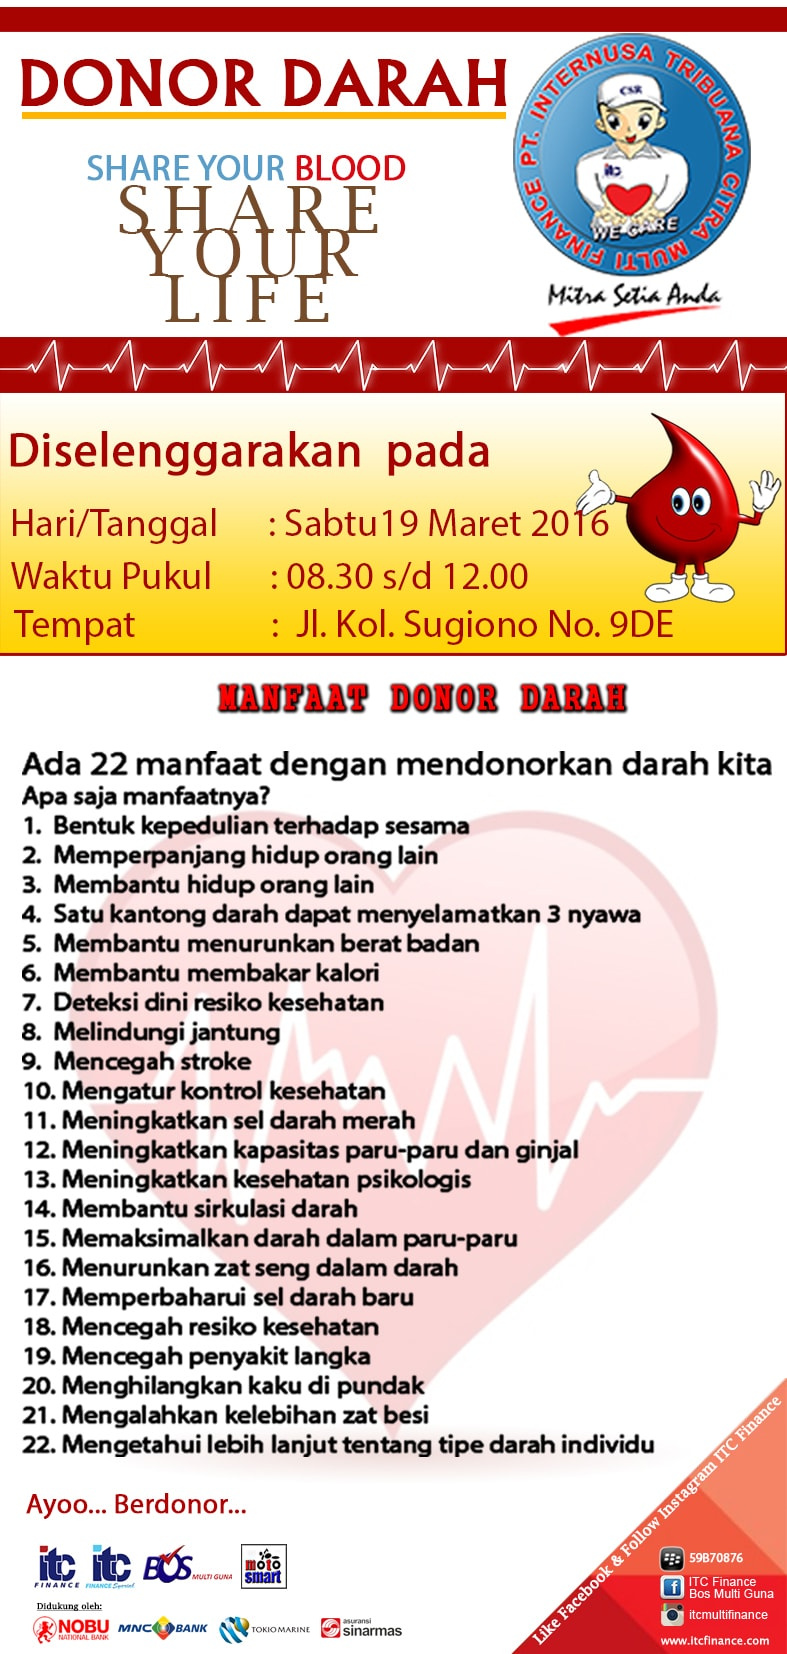 FLYER-Donor-Darah-Revisi-min